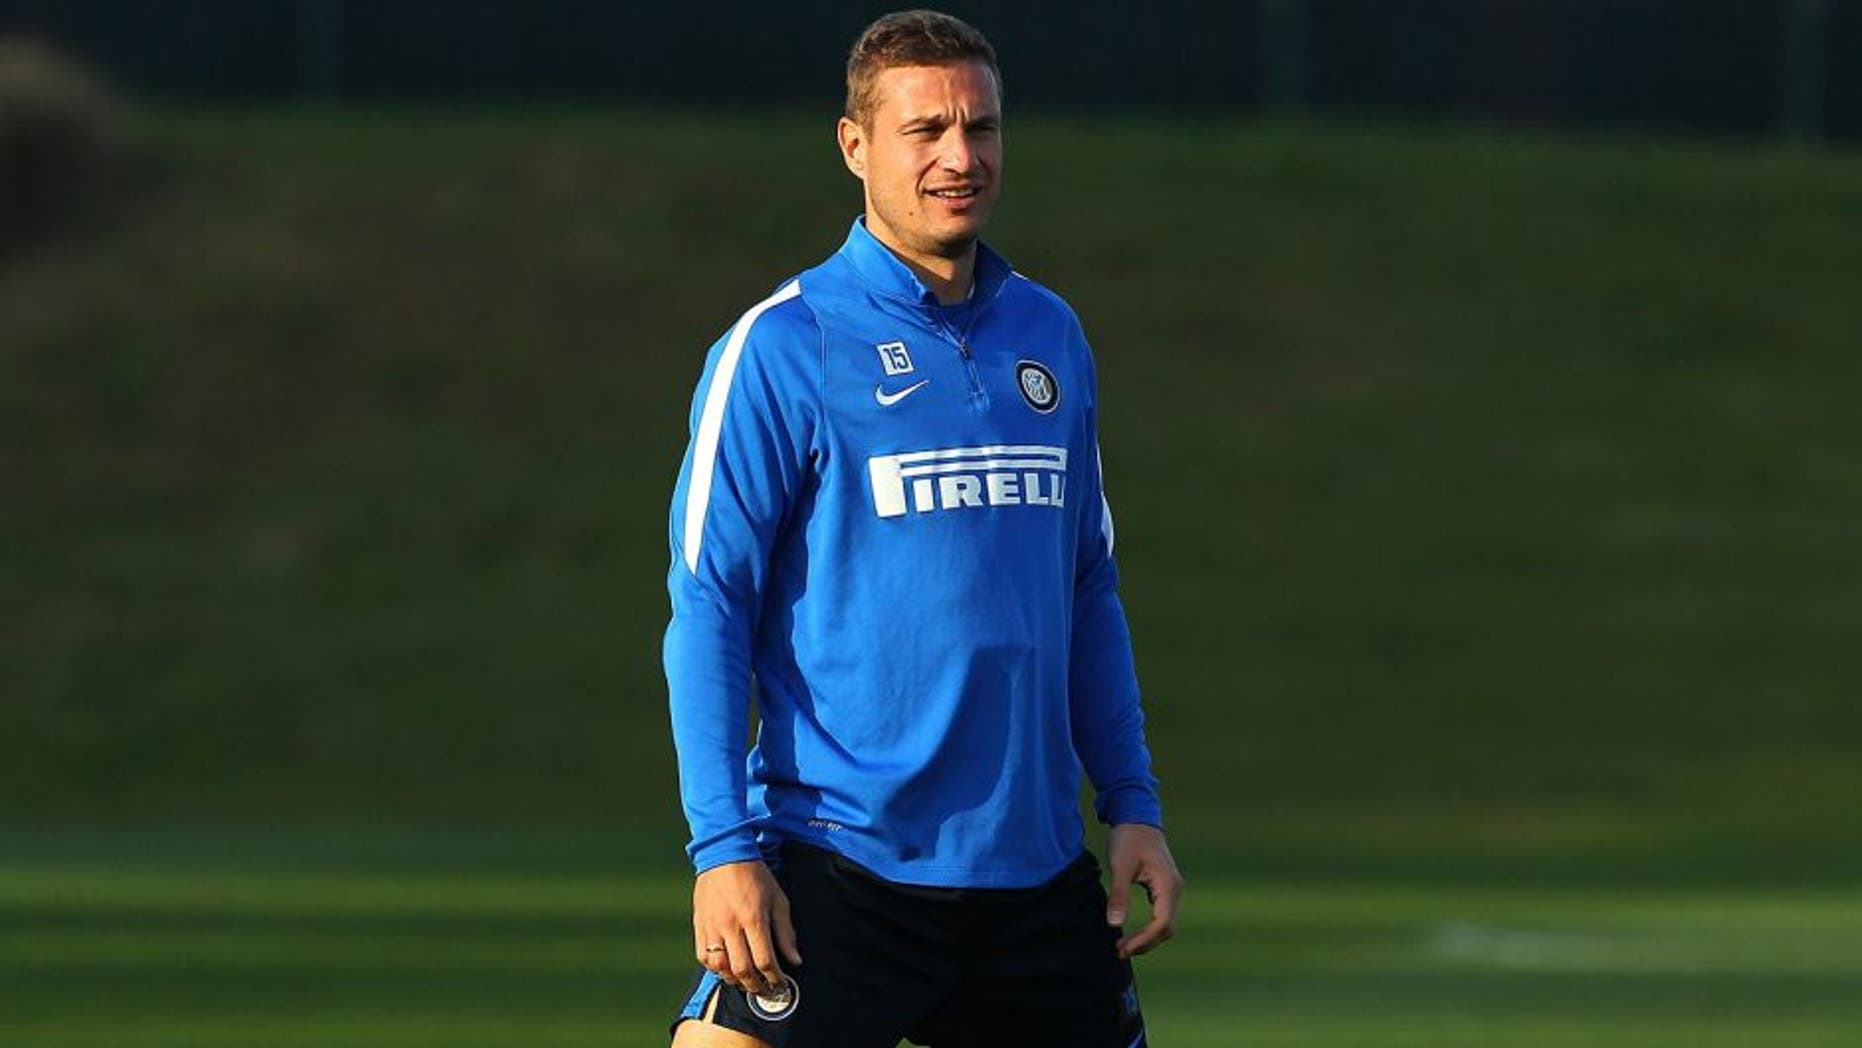 COMO, ITALY - NOVEMBER 12: Nemanja Vidic of FC Internazionale Milano looks on during FC Internazionale training session at the club's training ground on November 12, 2015 in Appiano Gentile Como, Italy. (Photo by Marco Luzzani - Inter/Inter via Getty Images)